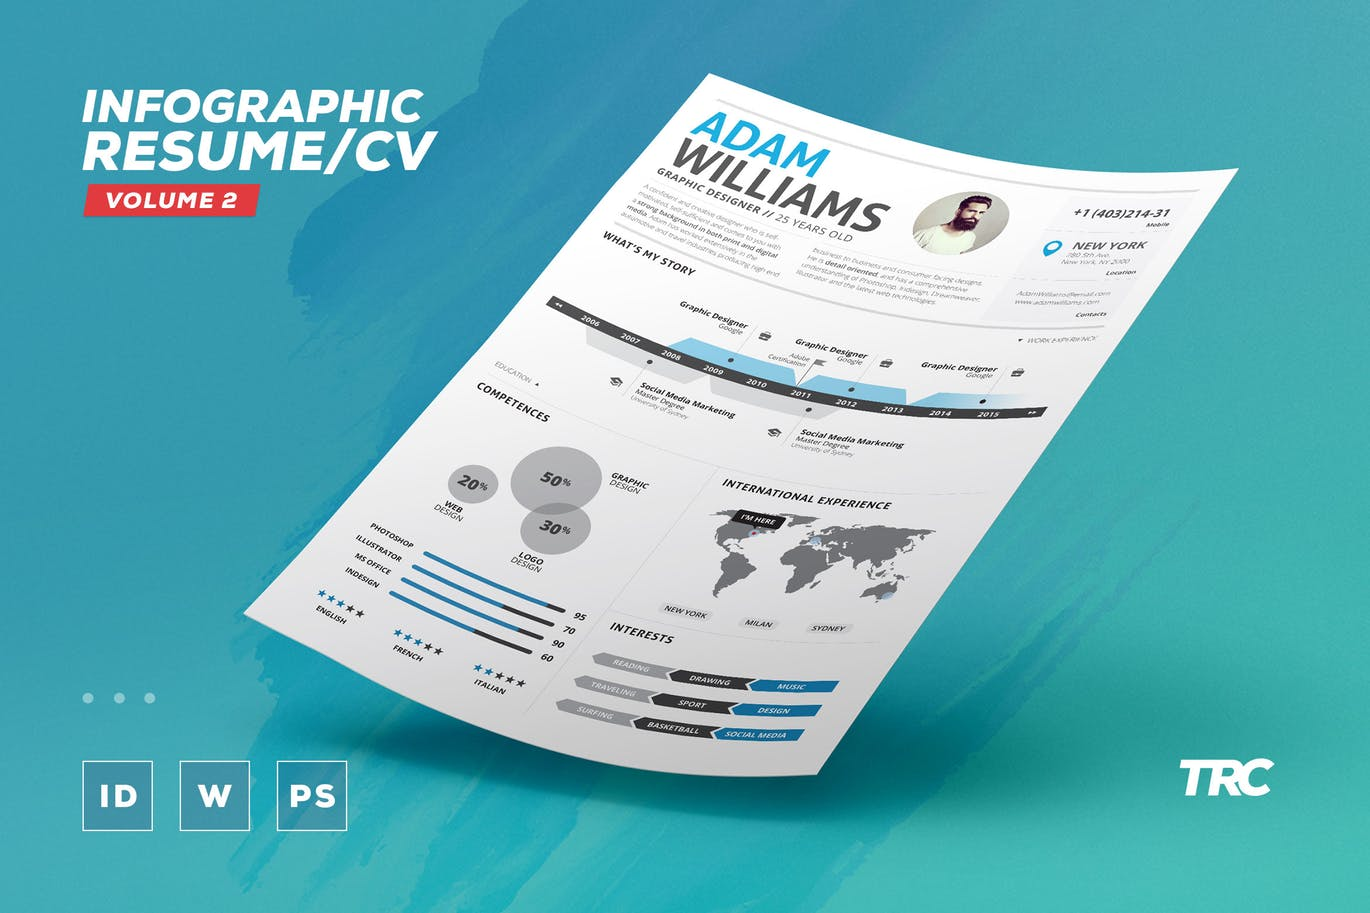 Infographic-Resume 50+ Best CV & Resume Templates 2020 design tips